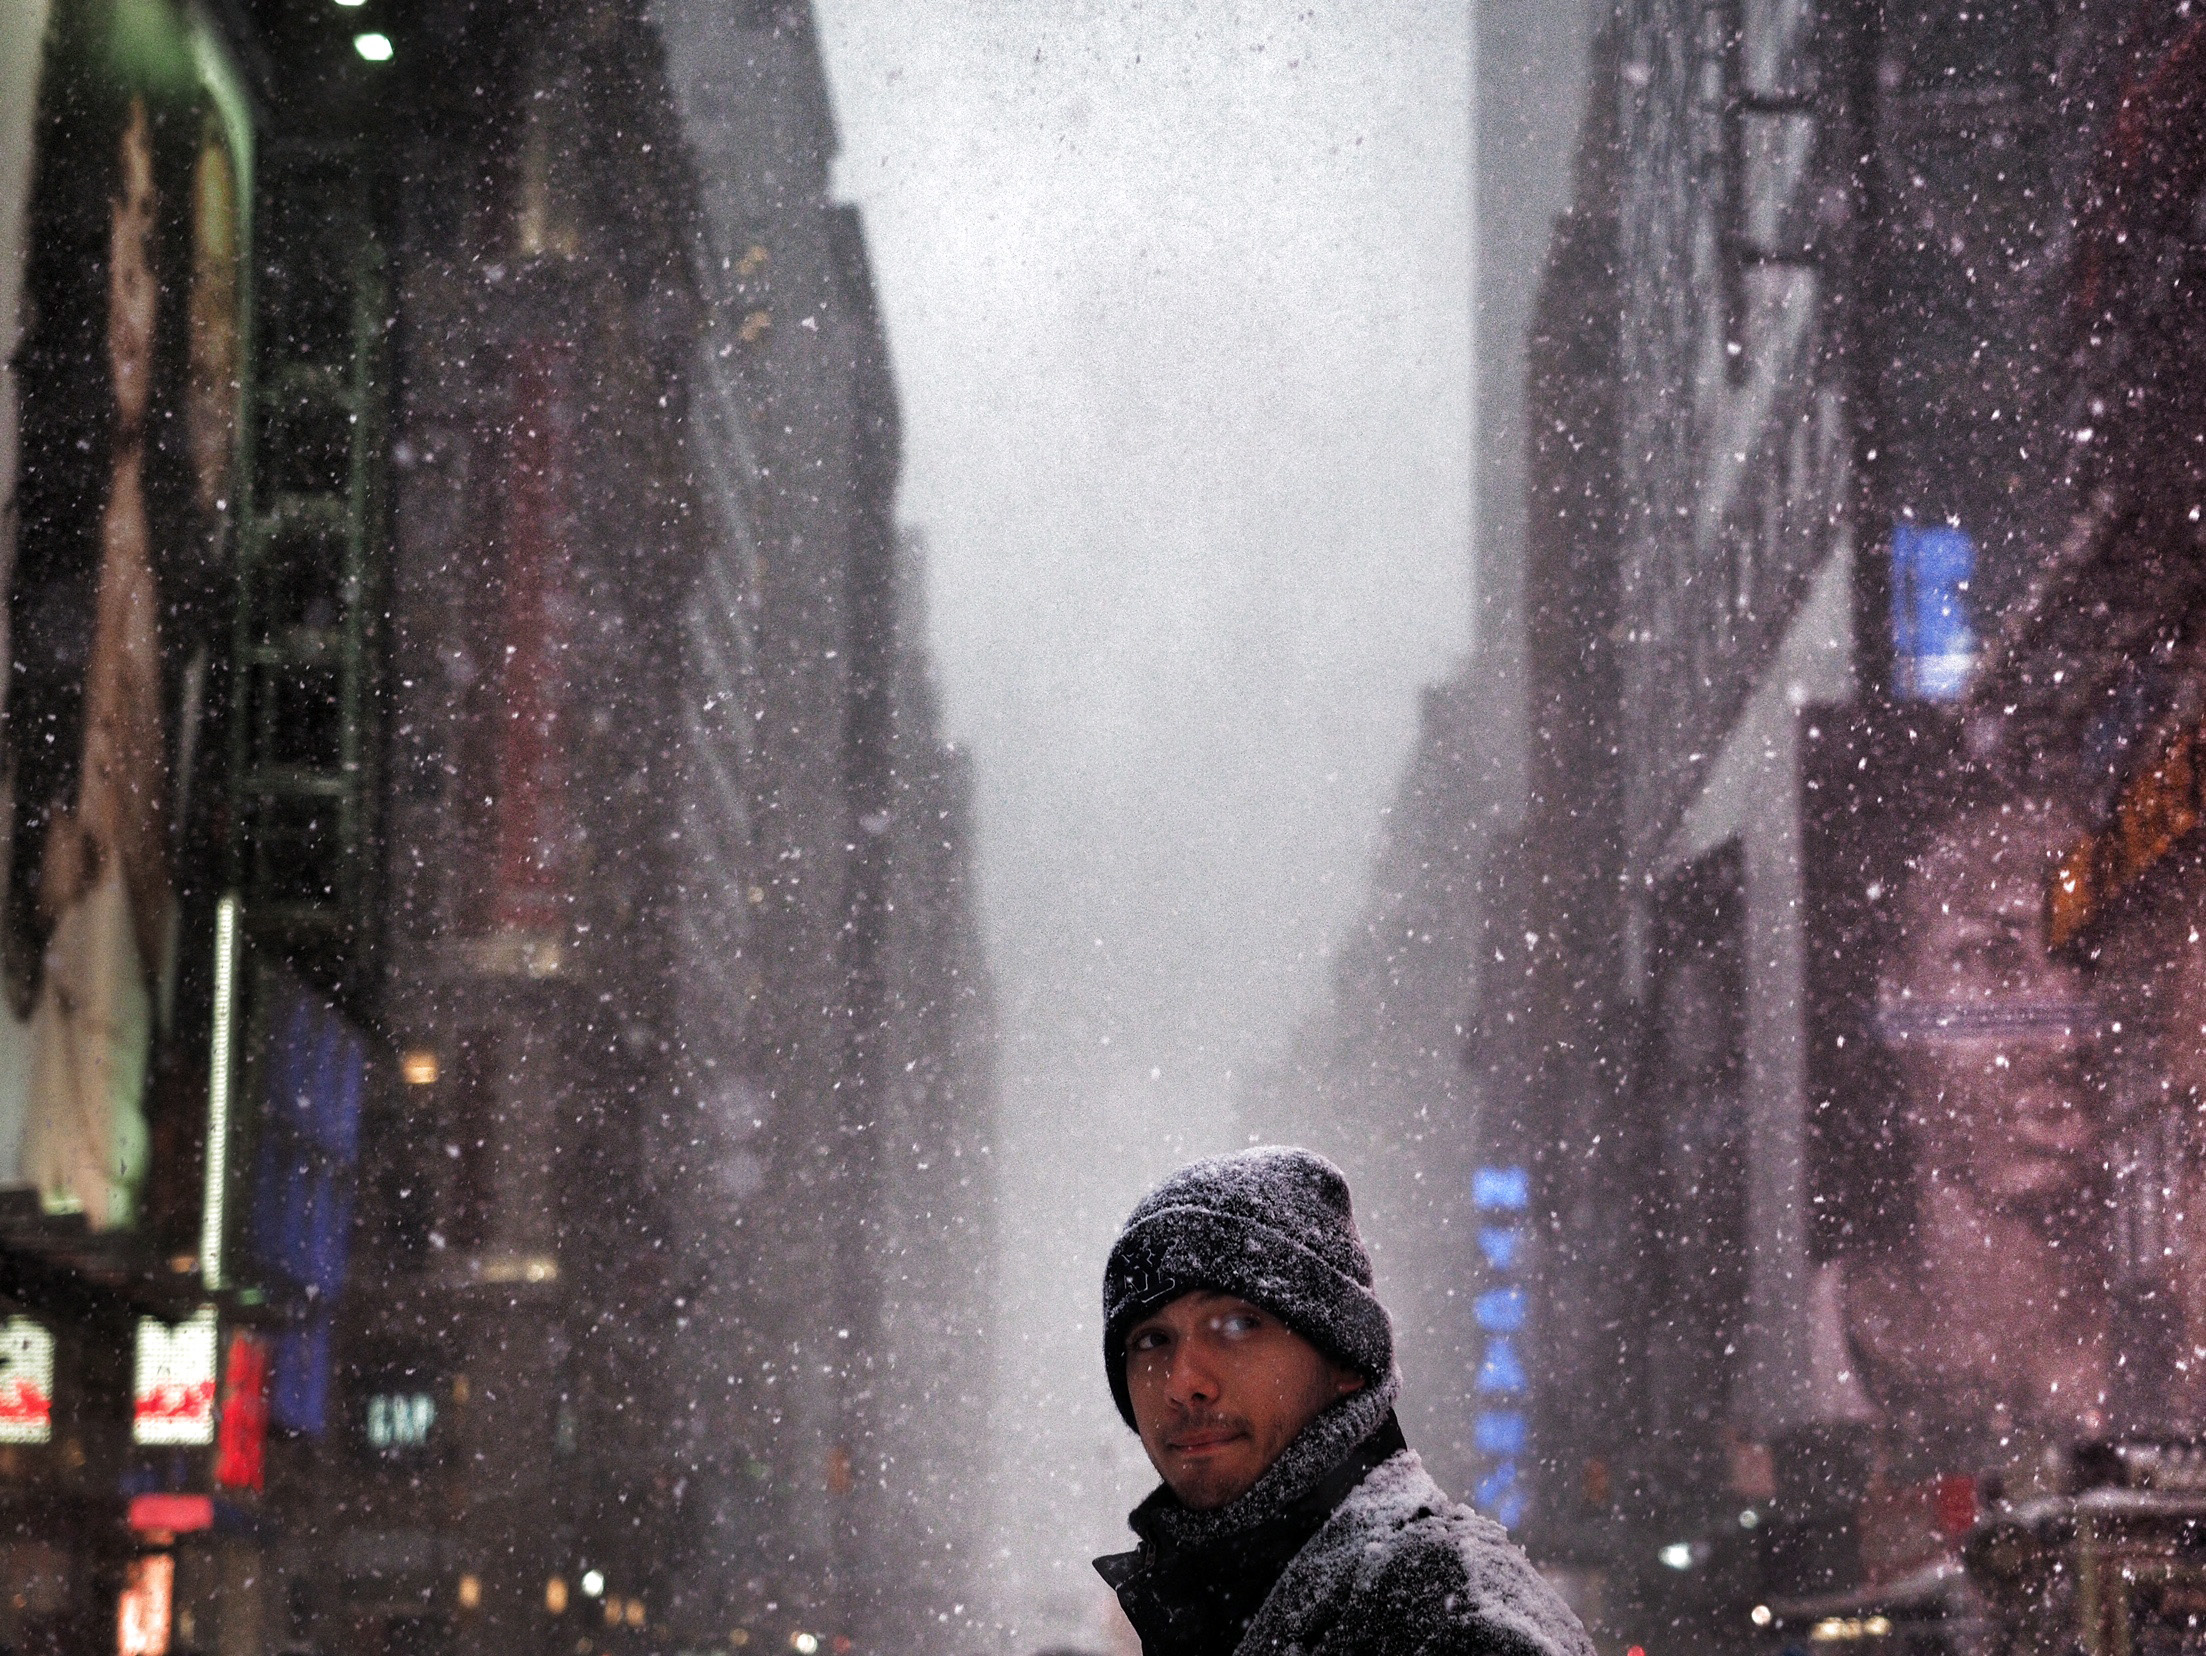 A man walks through the middle of a snow storm in Times Square, New York City on Jan. 26, 2015.